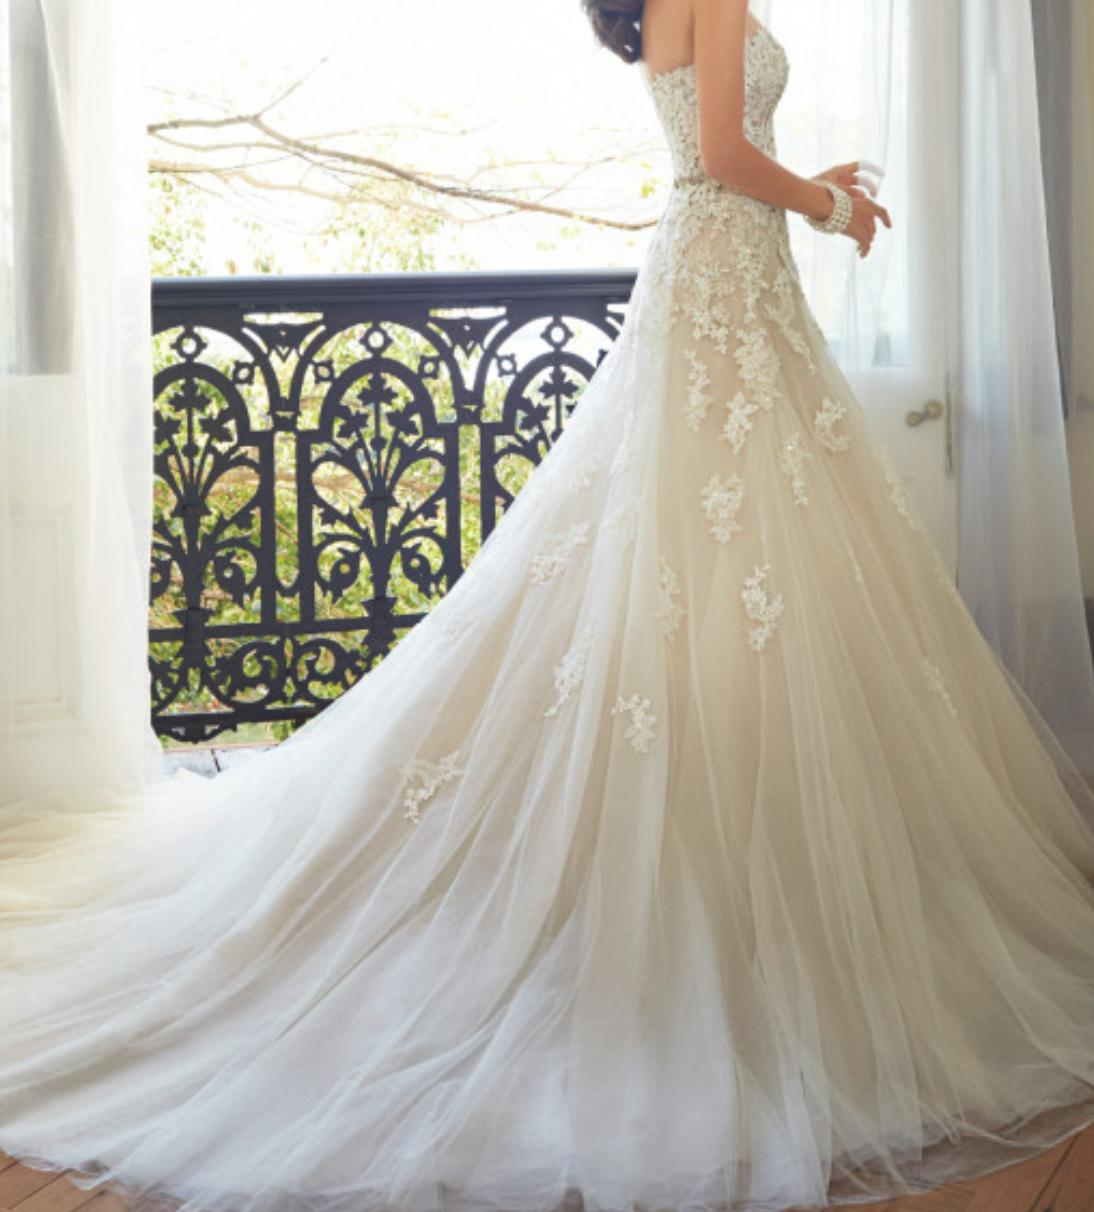 Cost Of Sophia Tolli Wedding Gowns: Sophia Tolli Prinia Wedding Dress